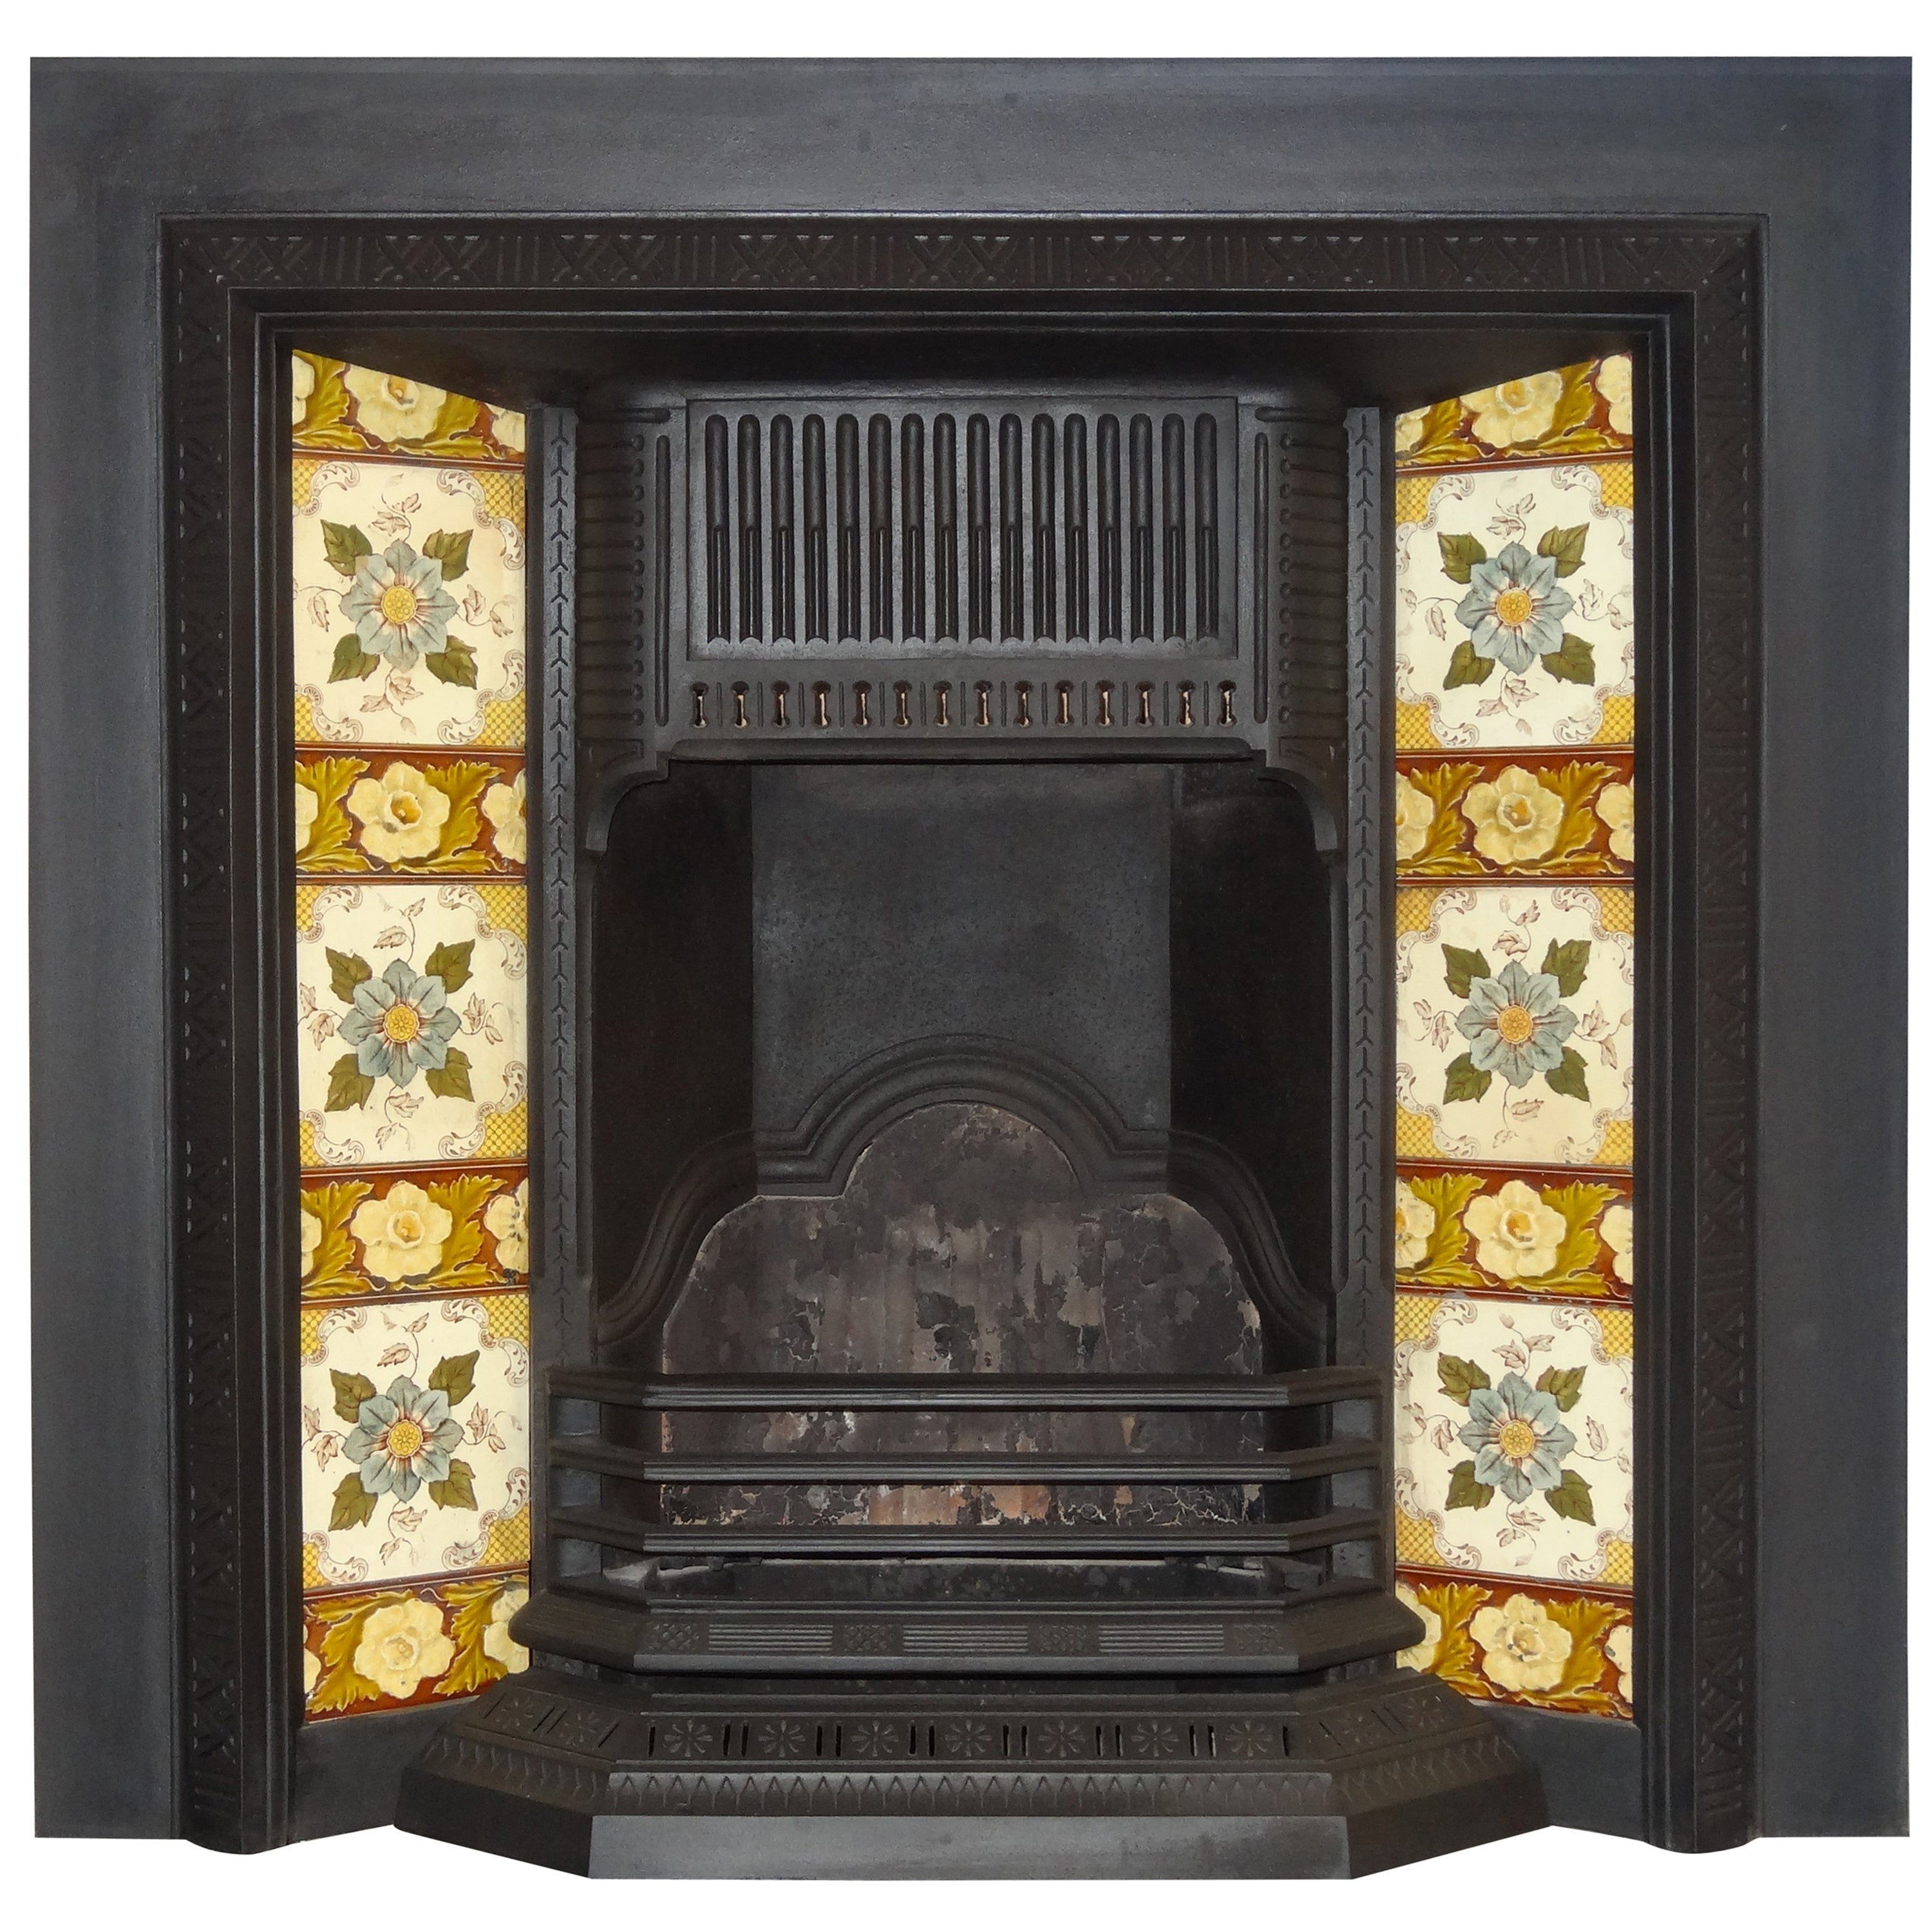 siding fireplace living cabinets ideas room remodelers office decorating tv fireplaces plumbing medium wall bar brick closet electrical above bath victorian large with coverings contractors home